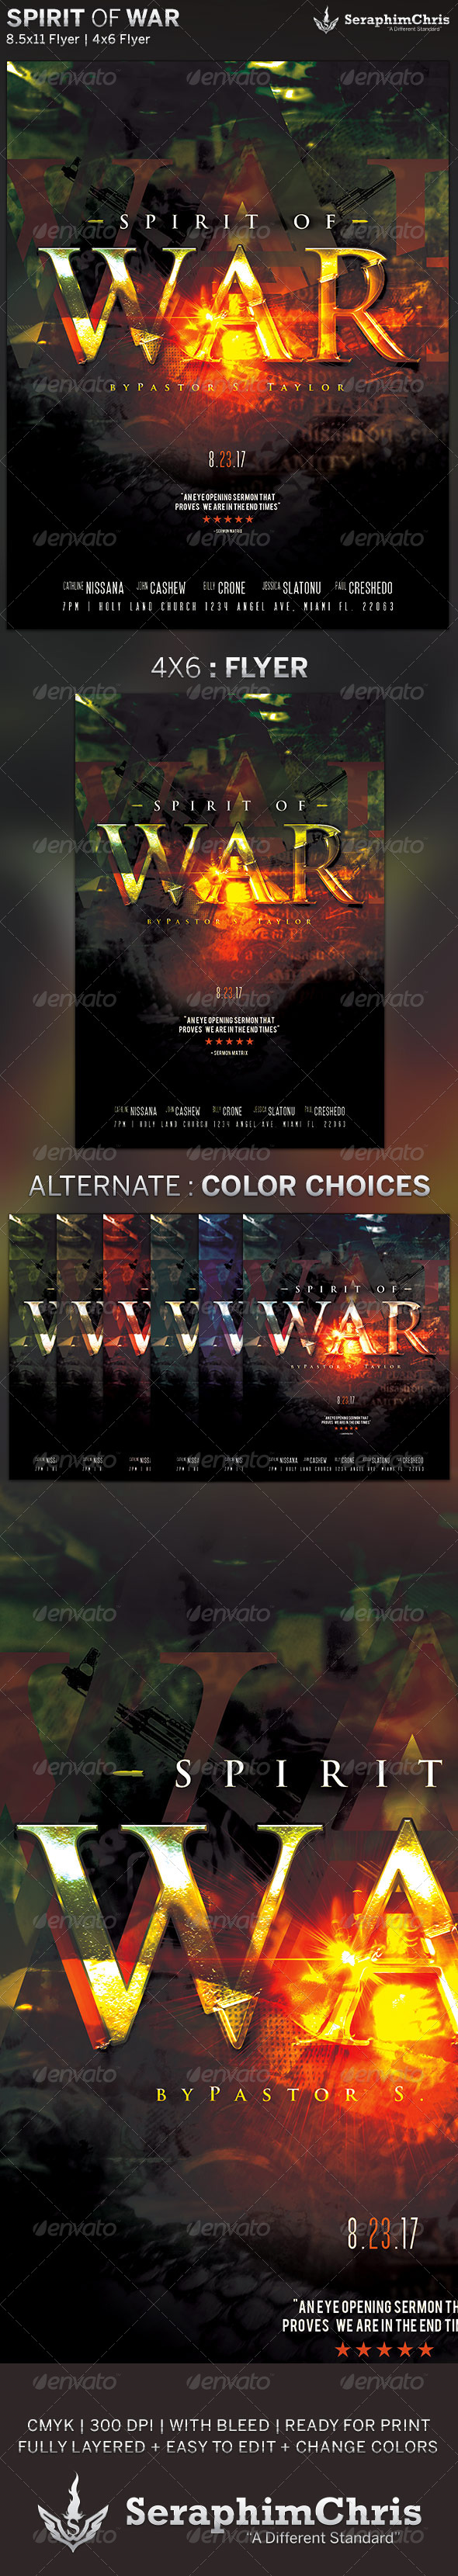 Spirit of War: Church Flyer Template - Church Flyers